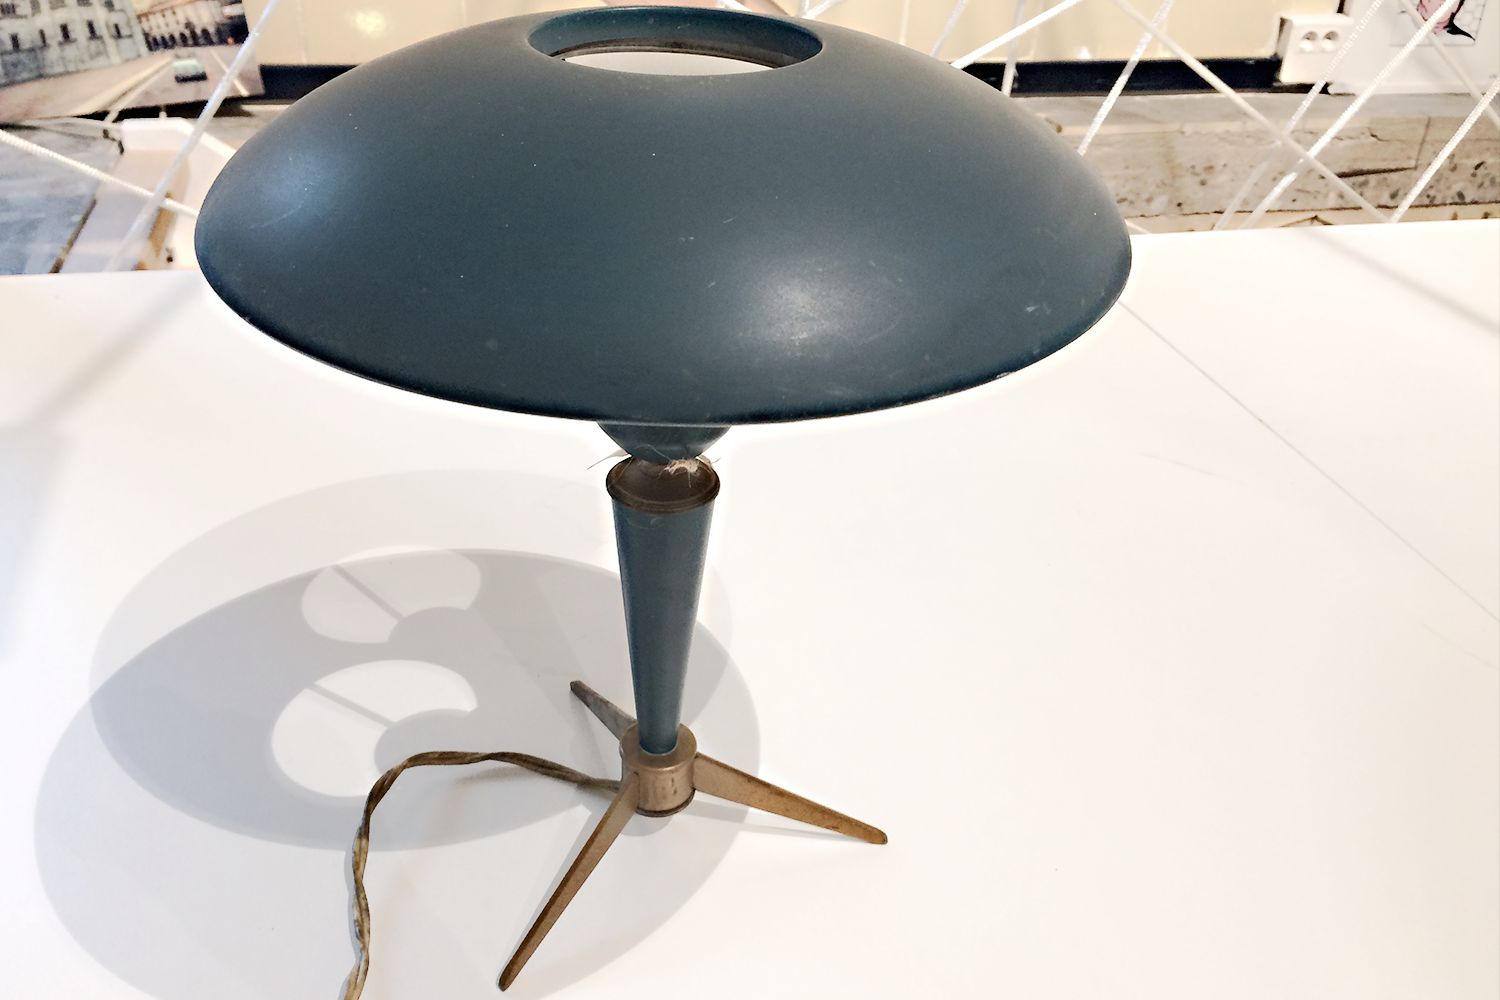 Vintage Tripod Desk Lamp by Louis Kalff for Philips for sale at Pamono – Tripod Desk Lamp